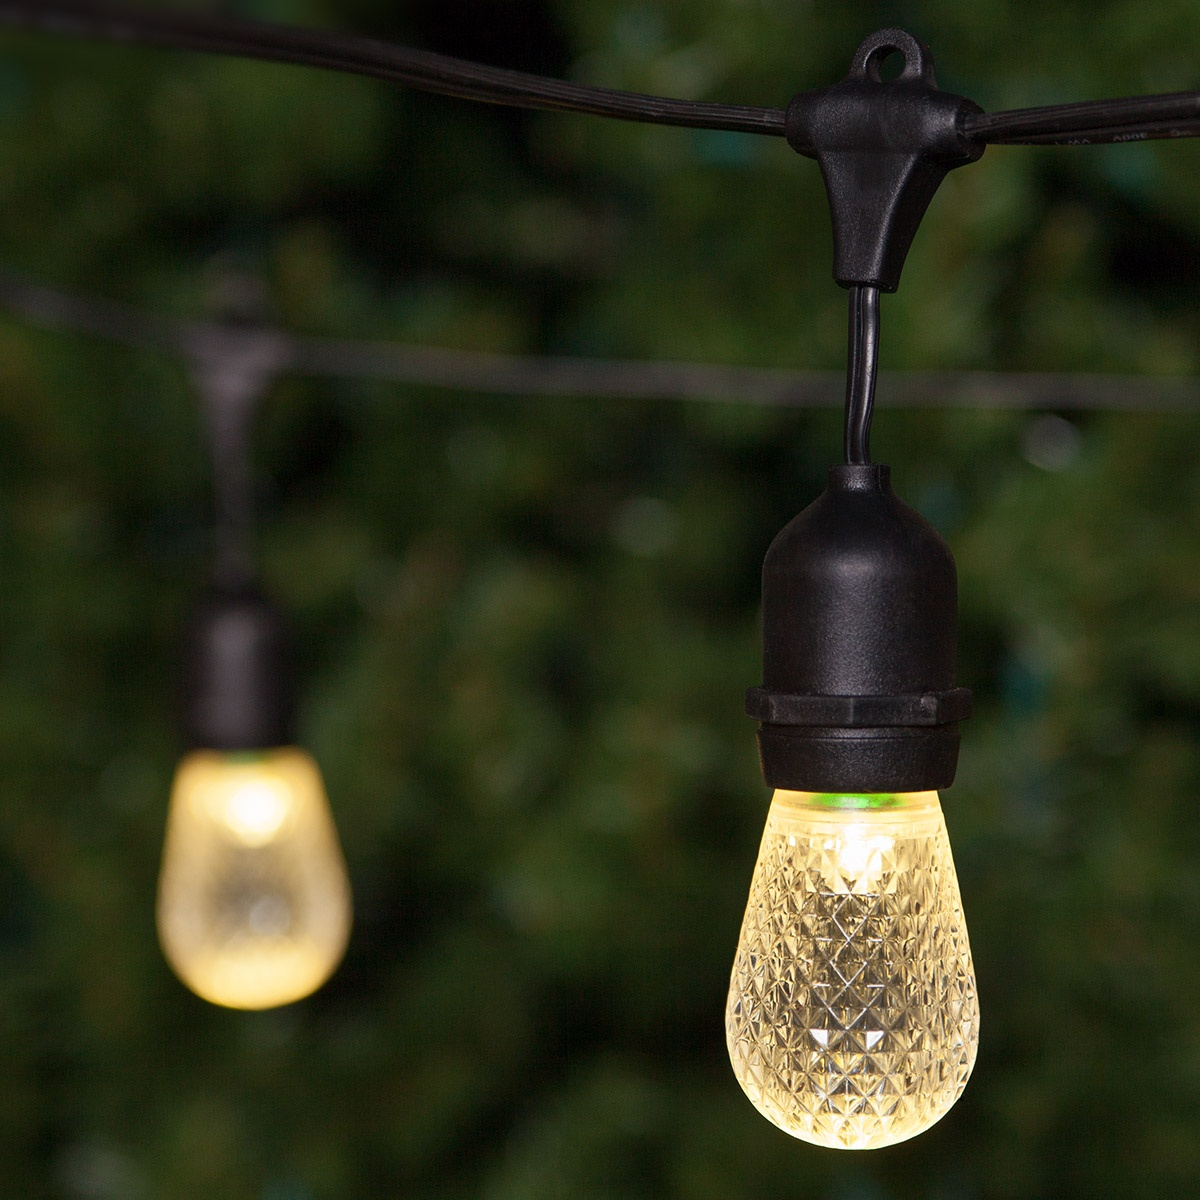 Patio Lights - Commercial Warm White LED Patio String Lights, 24 S14 E26 Bulbs Black Wire